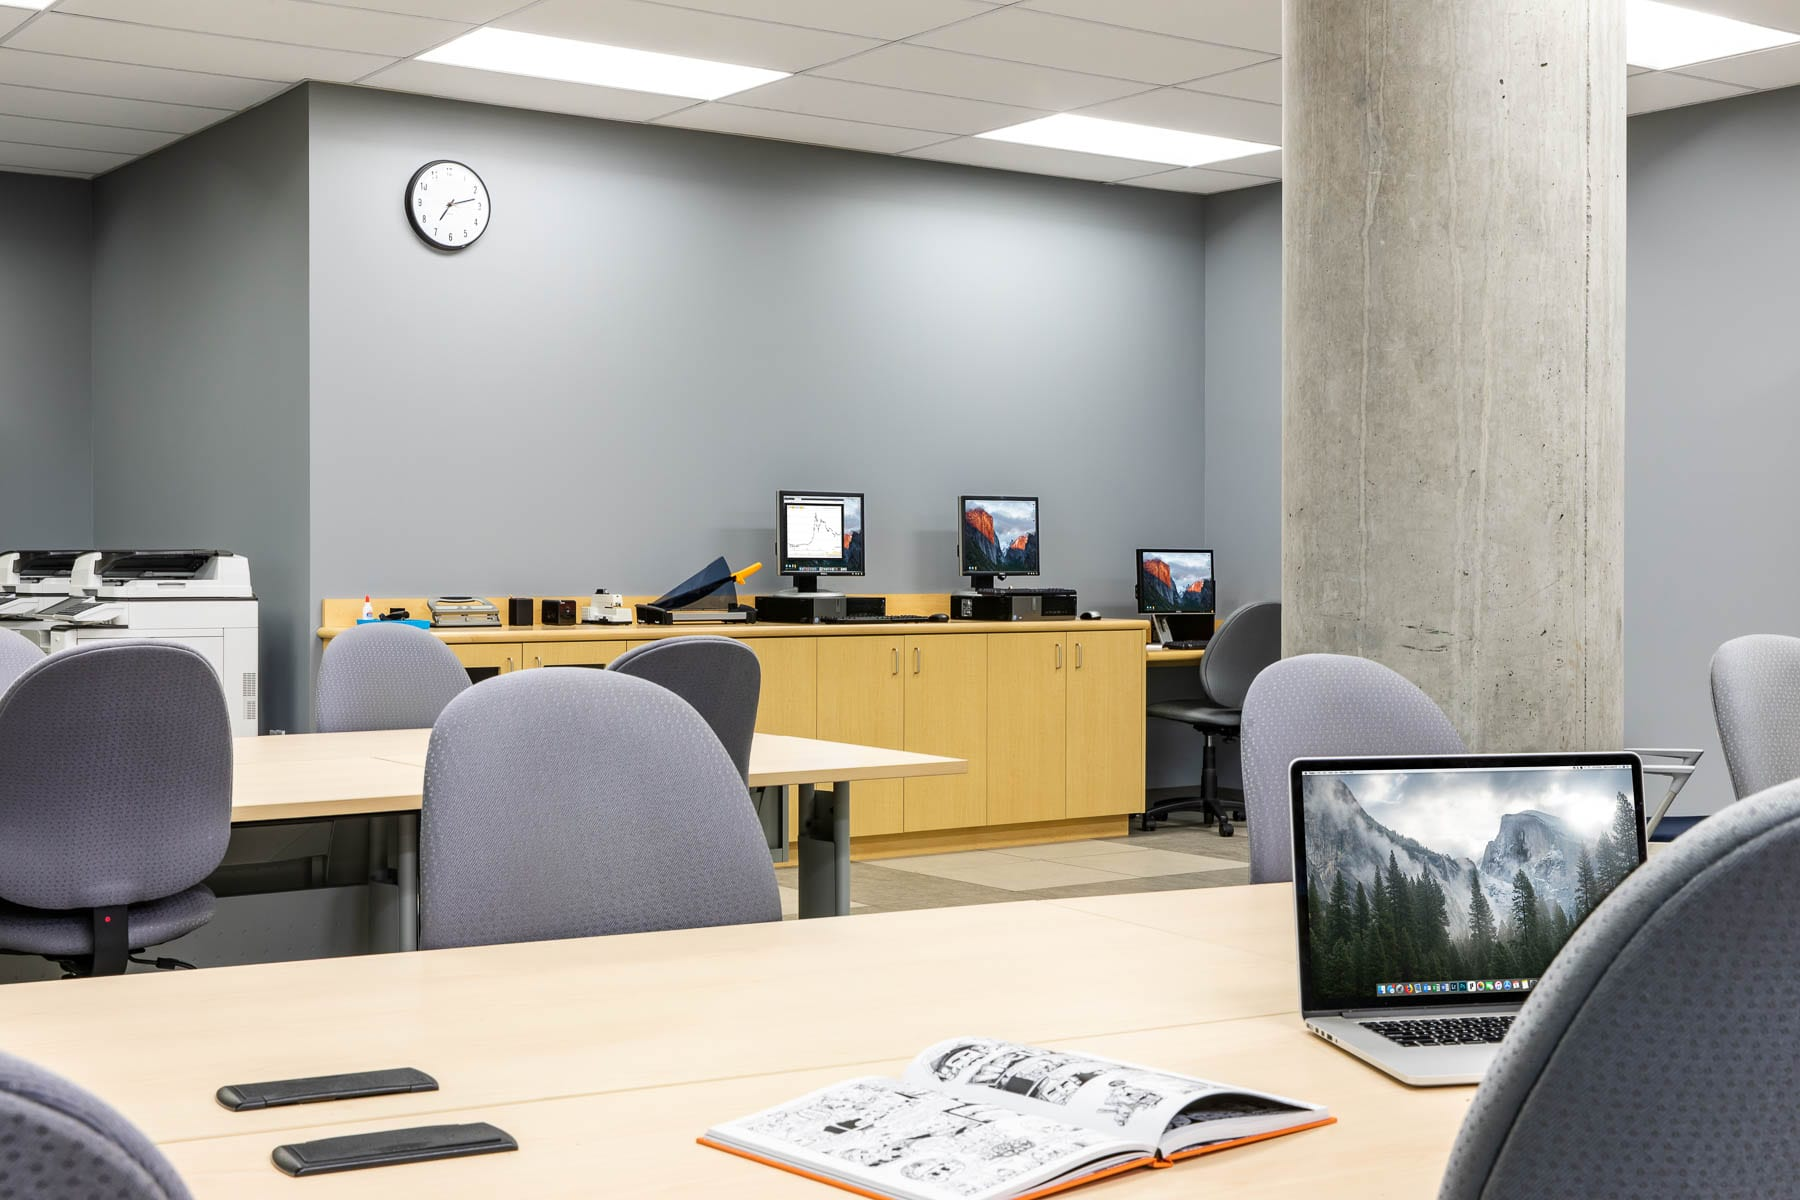 SFU Surrey campus Fraser Library renovation reconfiguring an existing copy and printing room into a flex space.